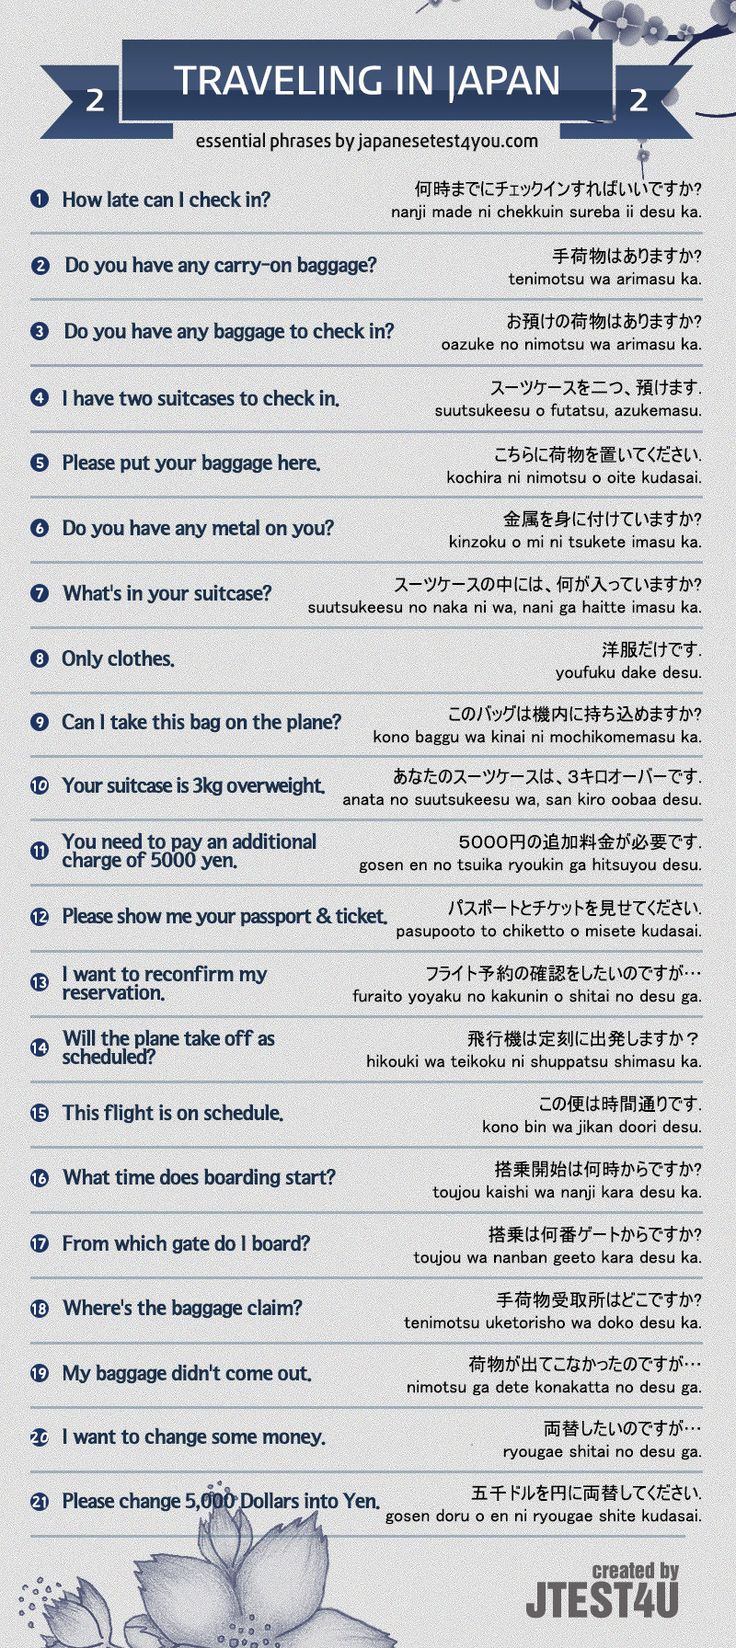 Essential Japanese phrases for traveling in Japan part 2. http://japanesetest4you.com/infographic-essential-japanese-phrases-for-traveling-part-2/